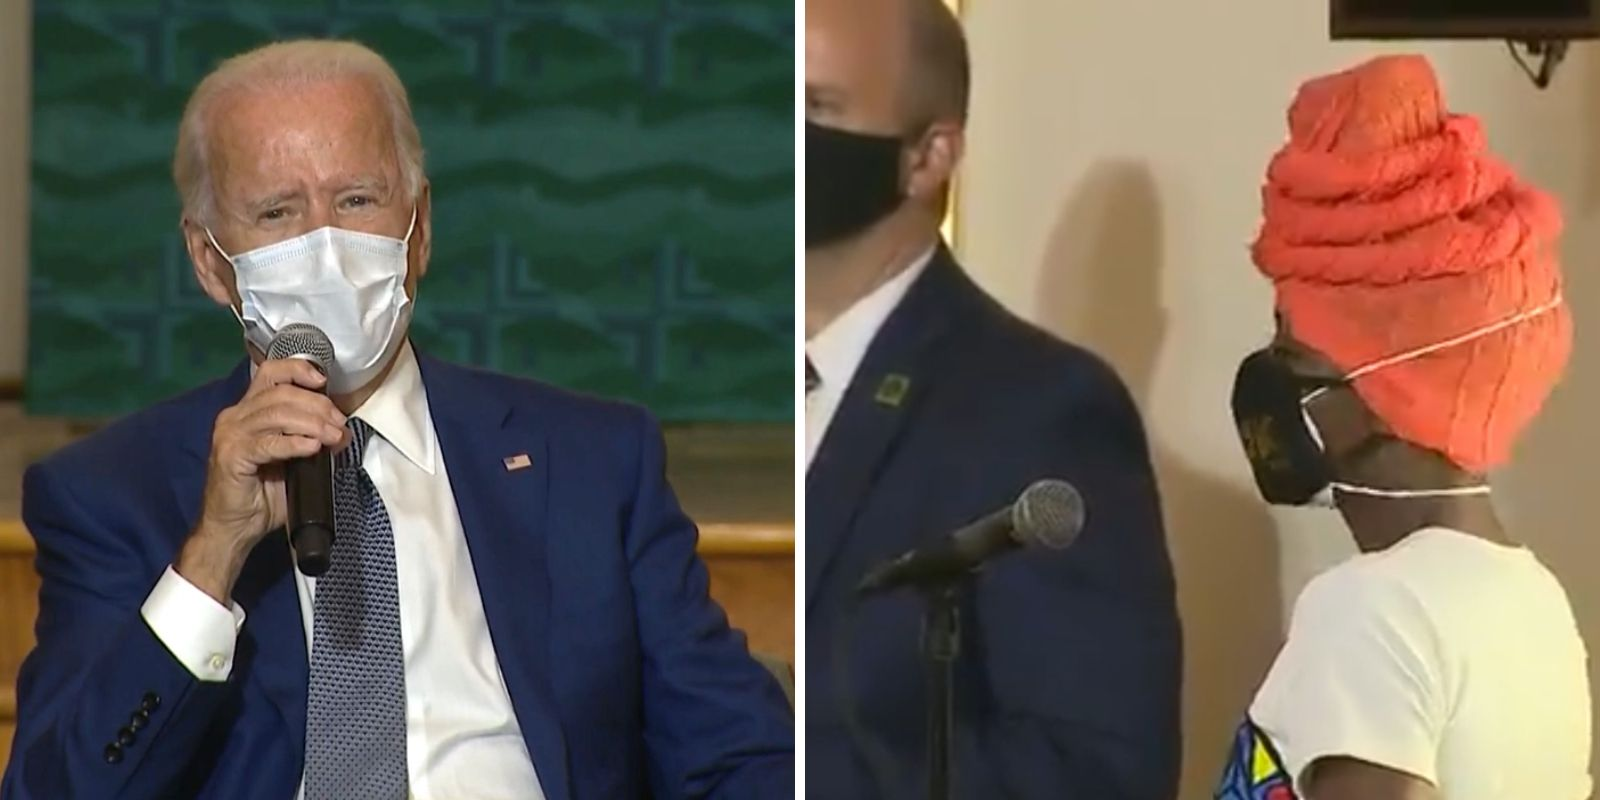 WATCH: Woman at Biden event admits that she was provided with a pre-written question to ask